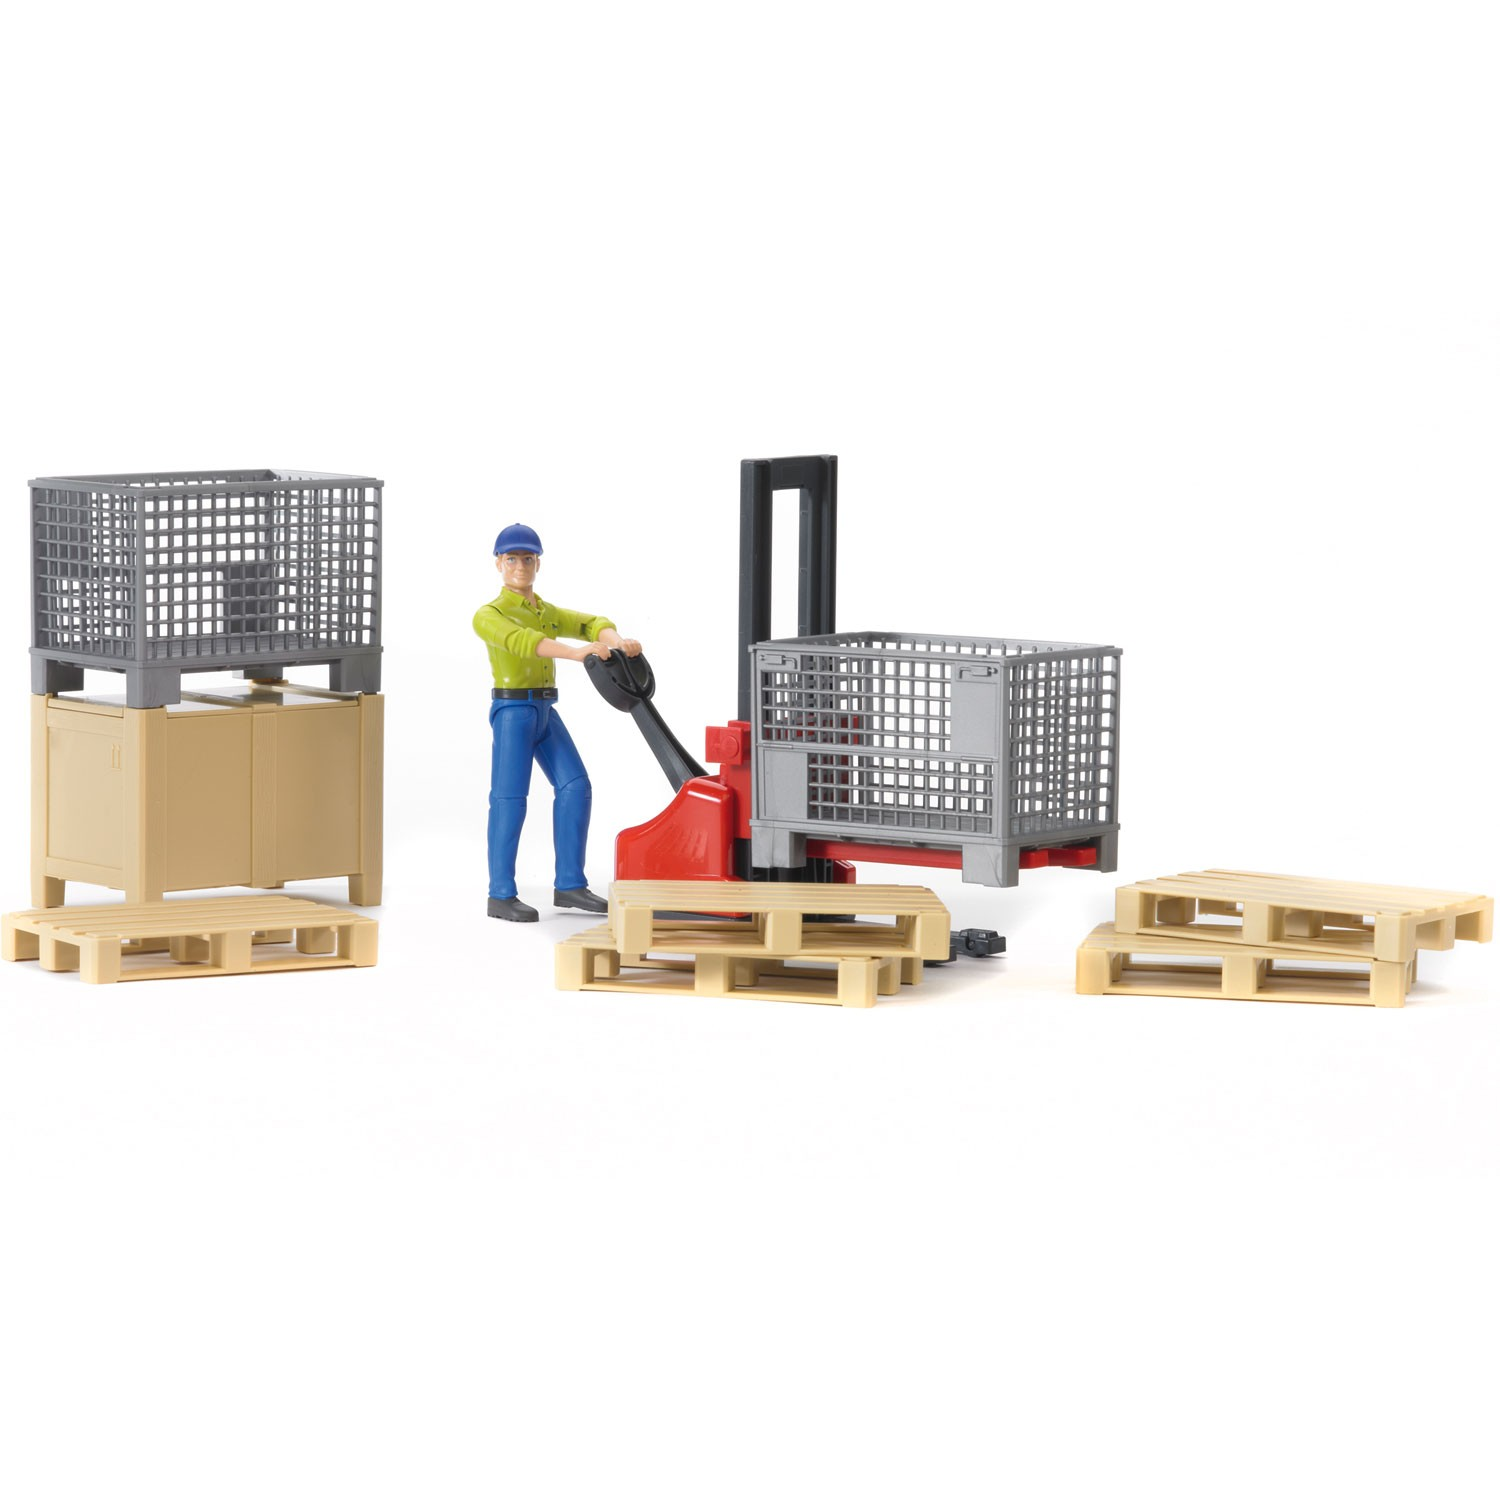 Bruder #62200 Logistics Set with Man! NEW!